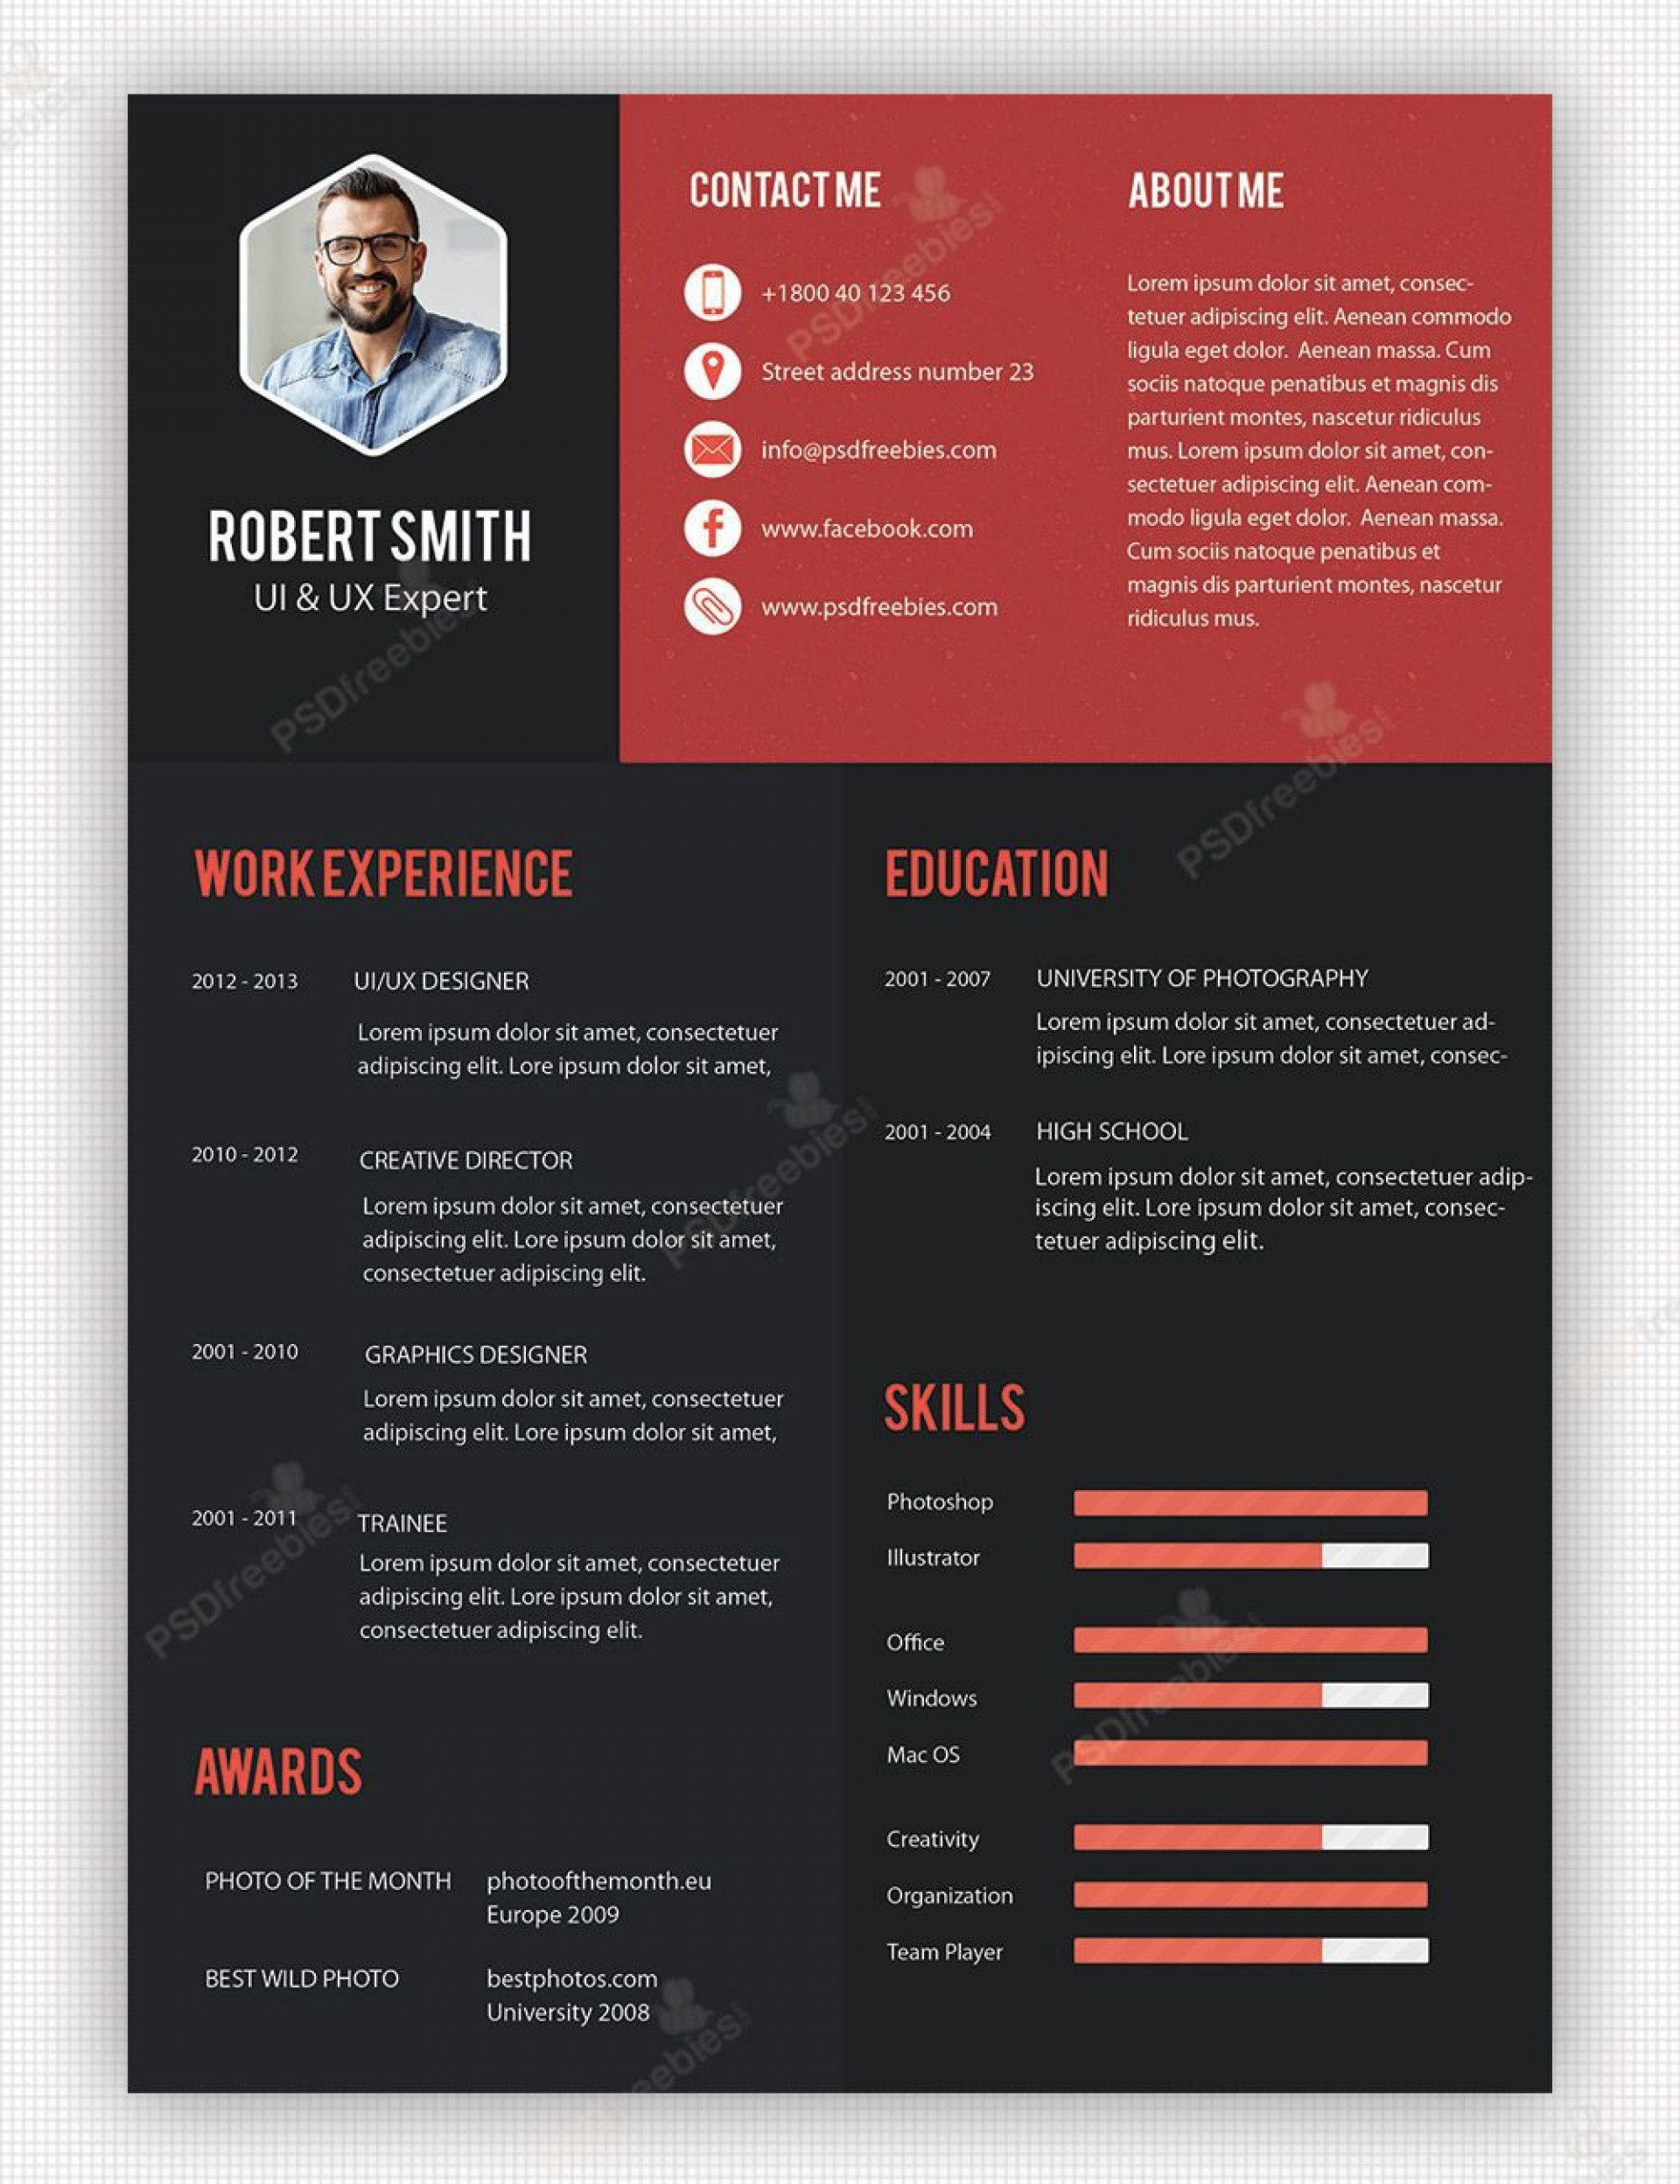 002 Unusual Cv Design Photoshop Template Free High Def  Resume Psd Download1920